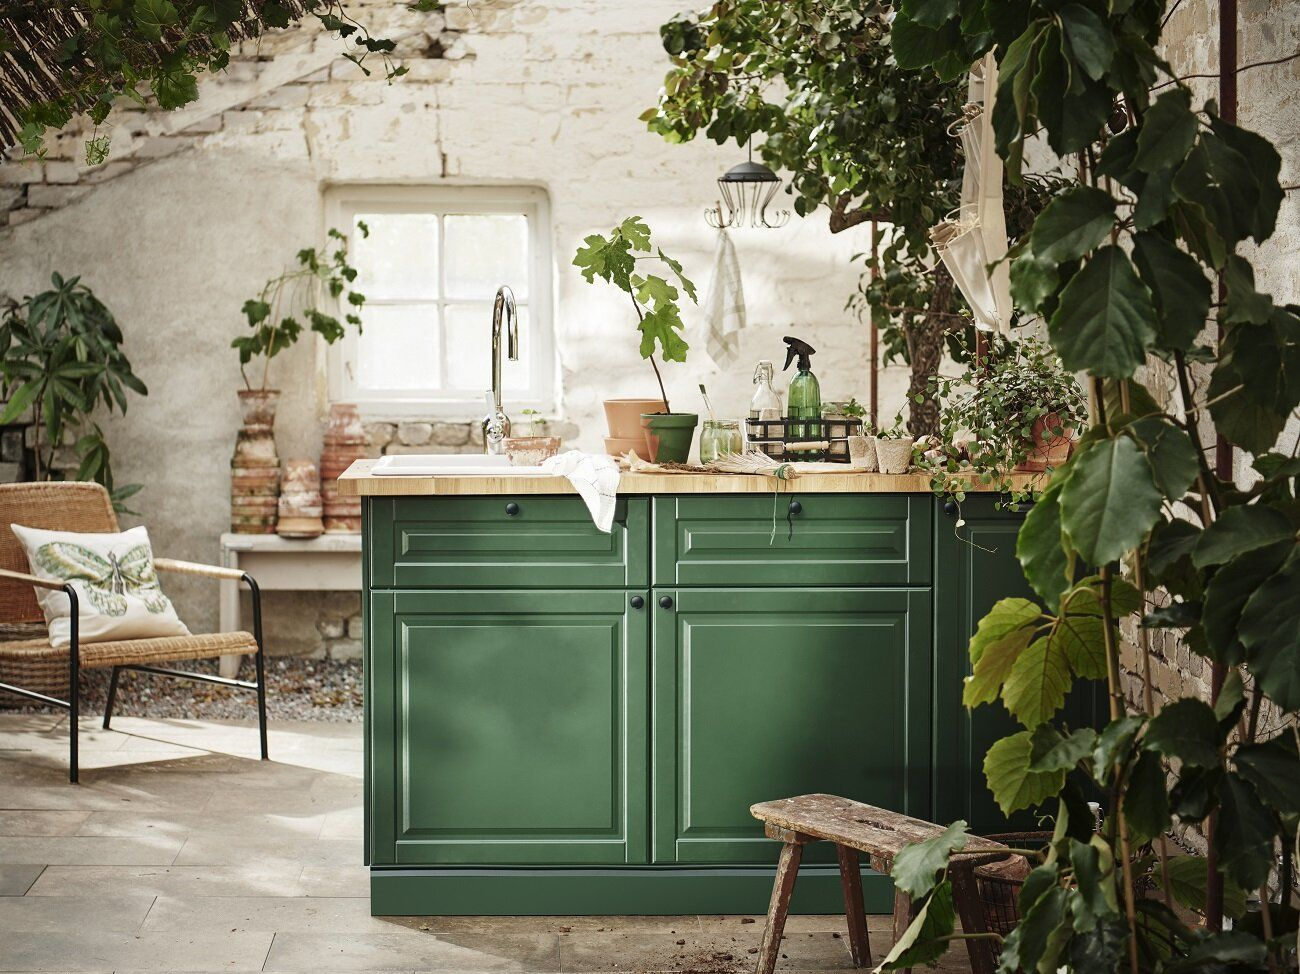 Ikea Spring Collection 2020 Mindful Living And Close To Nature The Nordroom In 2020 Dark Green Kitchen Outdoor Kitchen Cabinets Kitchen Layout